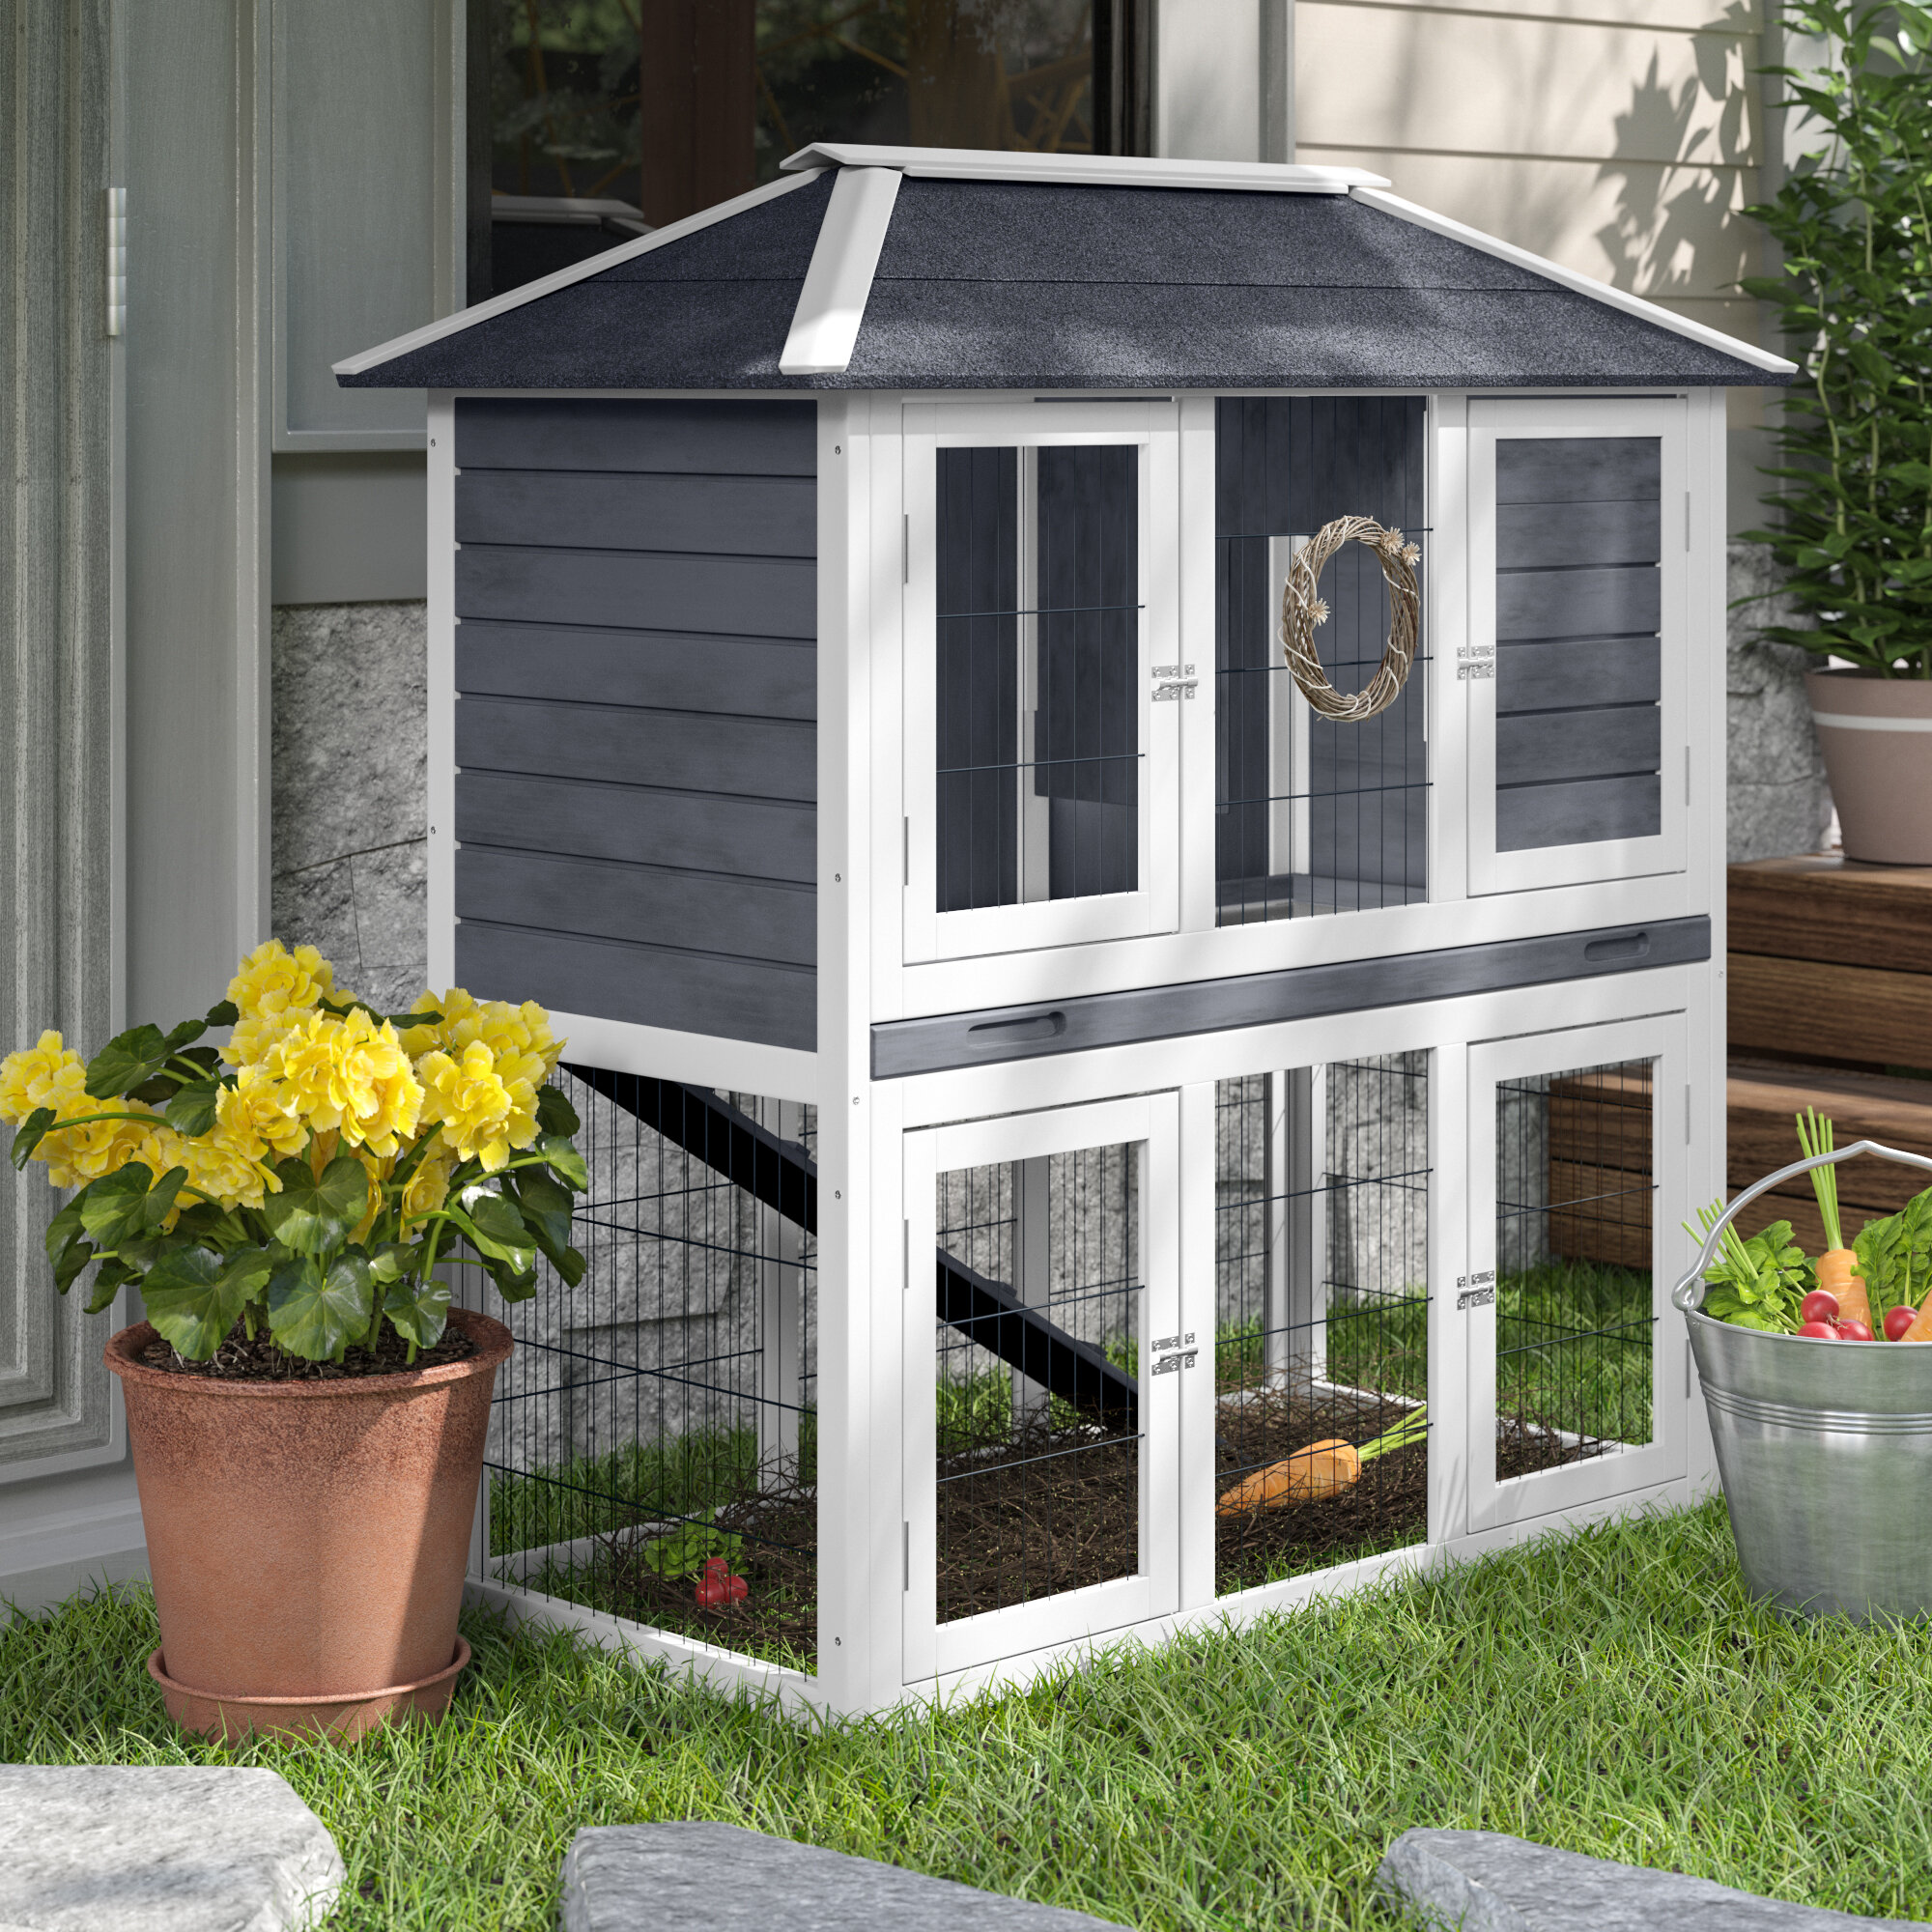 Englewood Weather Resistant Rabbit Hutch with Ramp